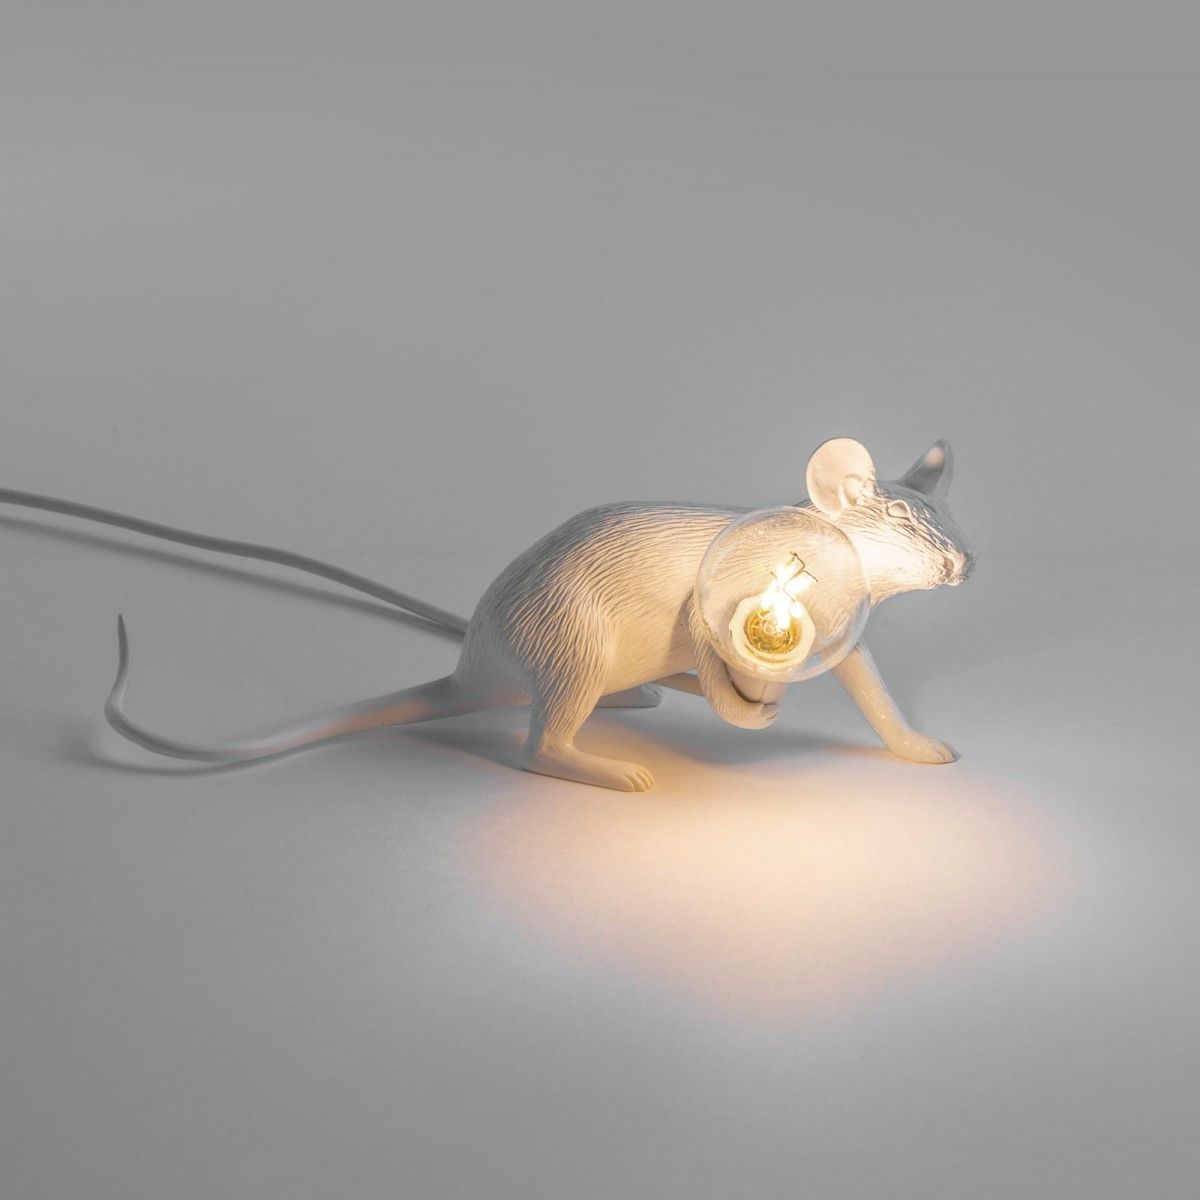 Mouse lamp Lop lying down